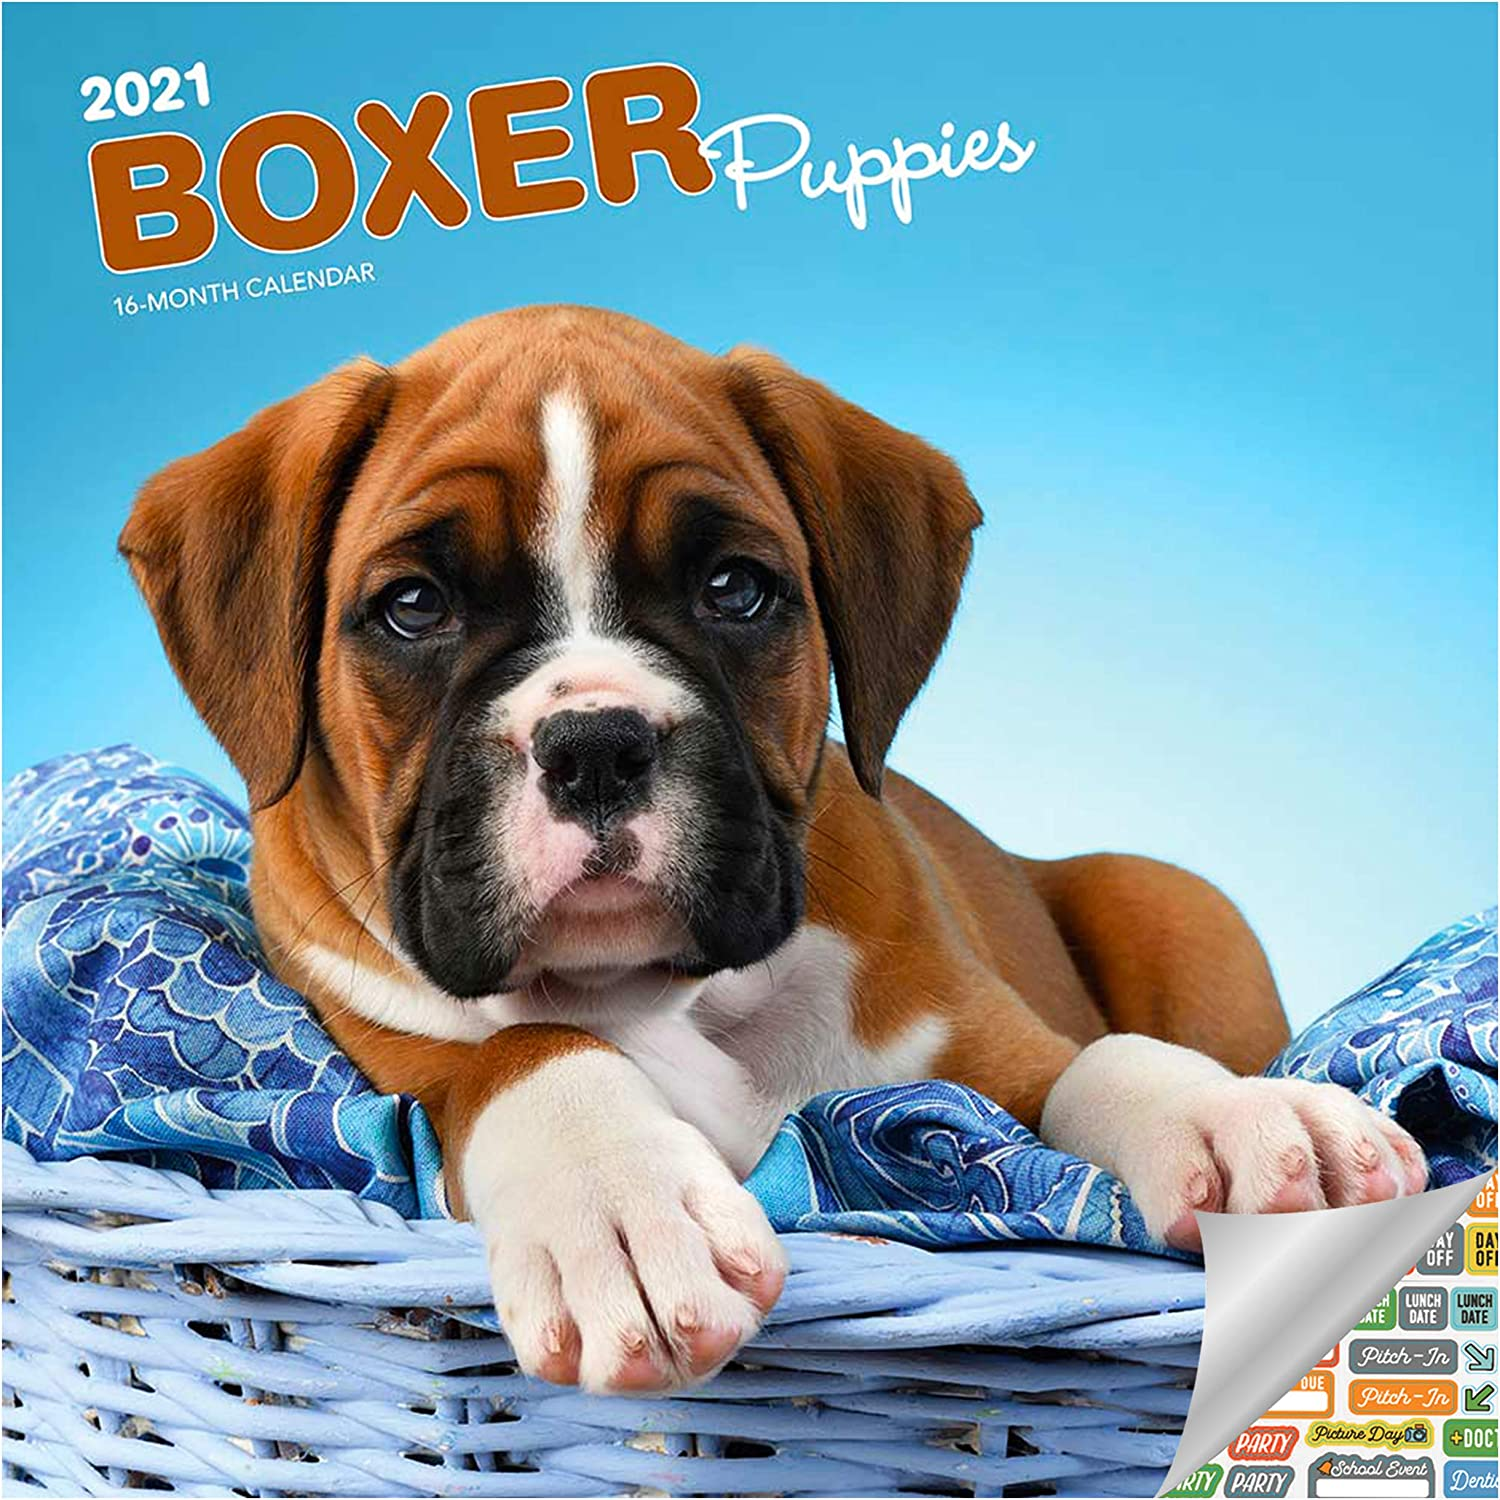 Boxer Puppies Calendar 2021 Bundle - Deluxe 2021 Boxer Puppies Wall Calendar with Over 100 Calendar Stickers (Dog Lover Gifts, Office Supplies)